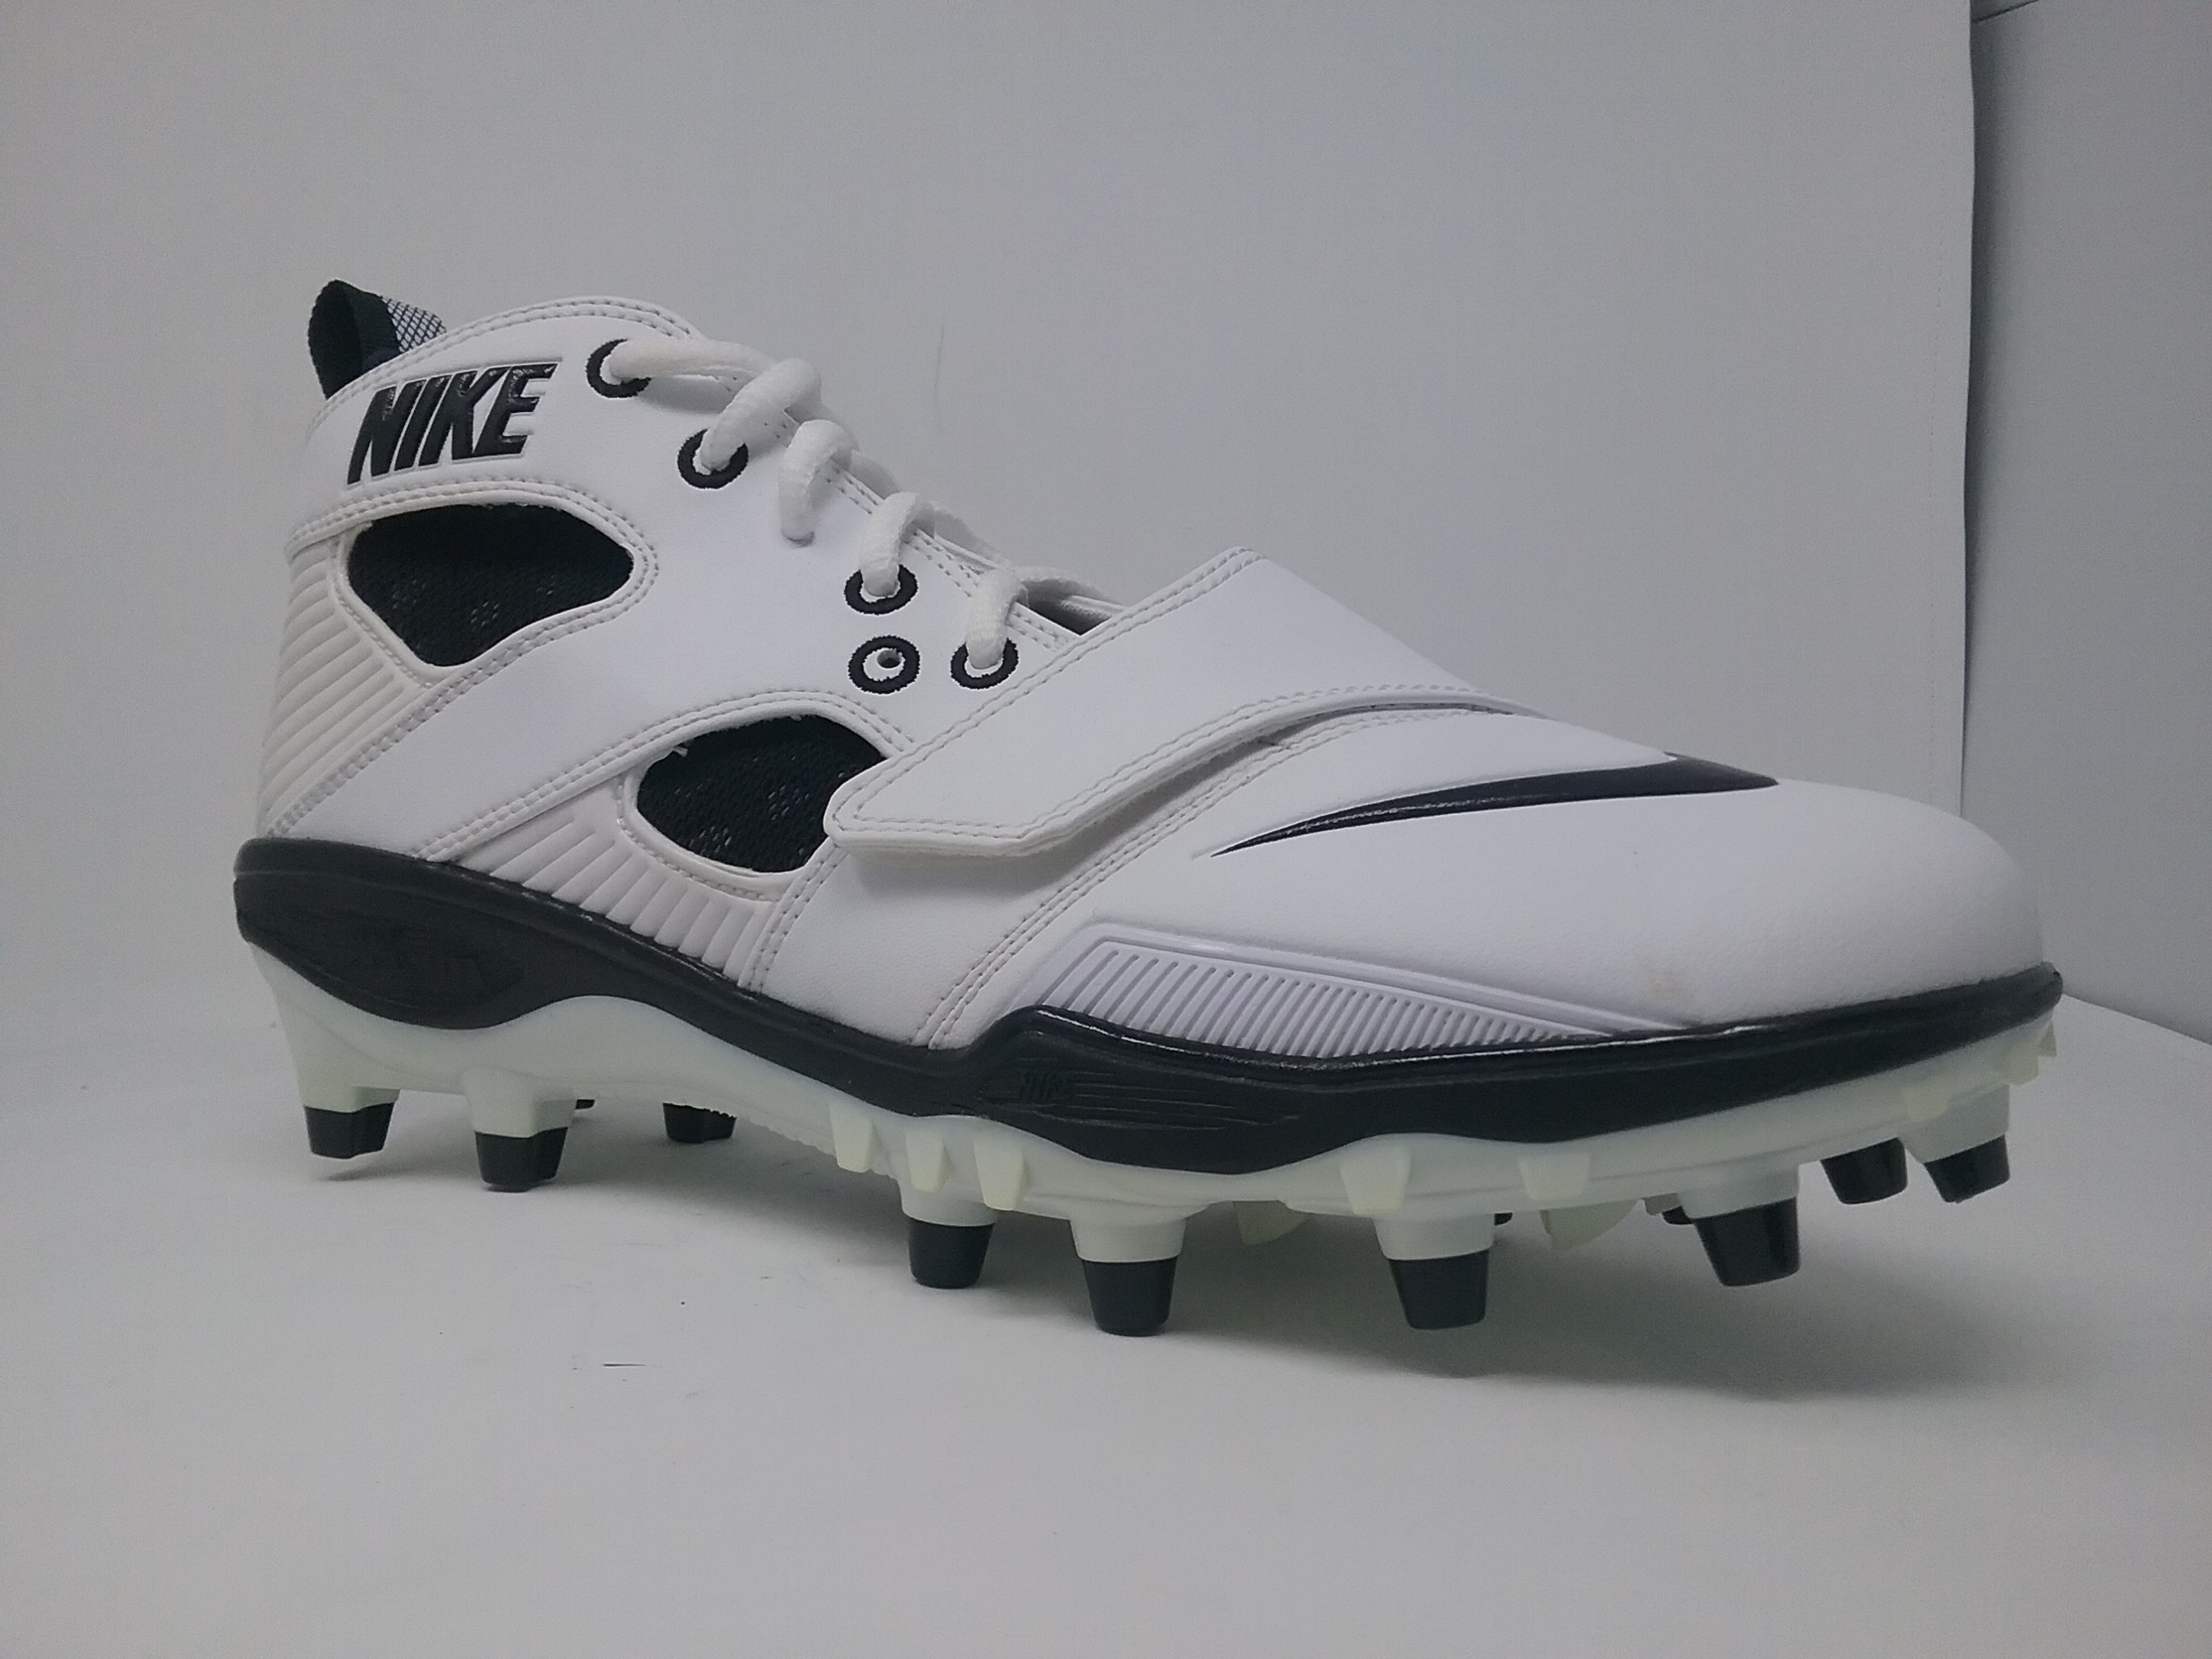 c765b6cb4 new zealand new nike zoom huarache ll 419116 101 mens 8 white black molded lacrosse  cleat